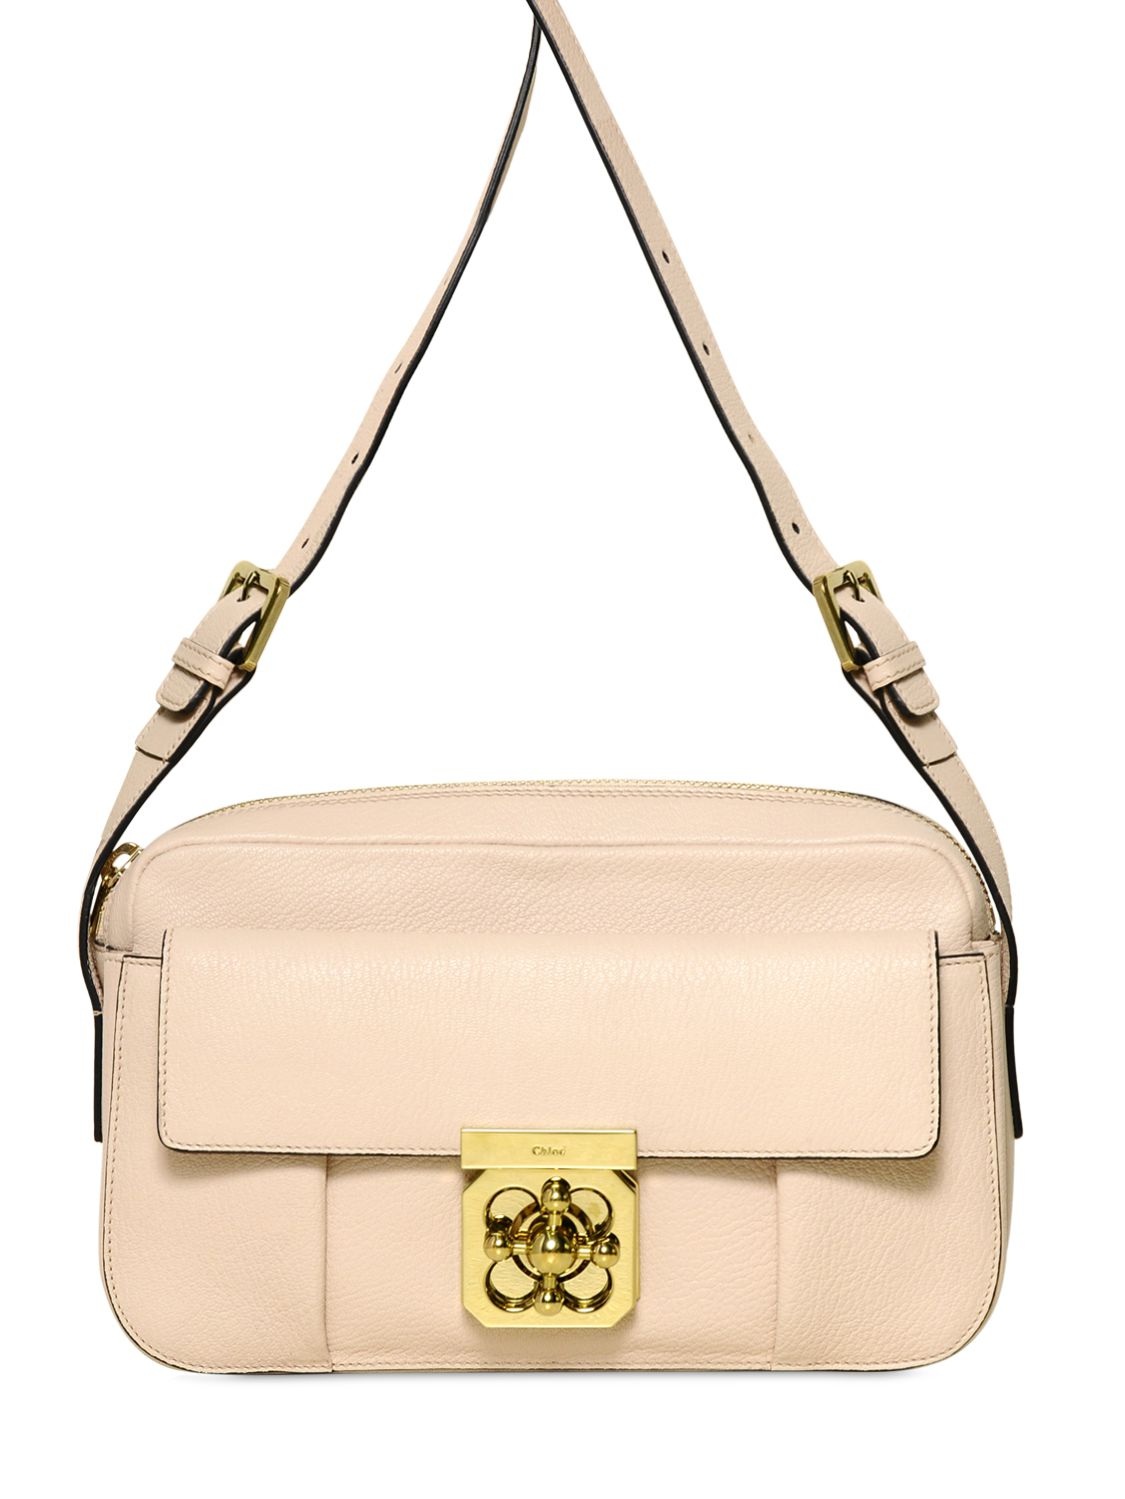 chloe red bag - chloe beige leather handbag elsie